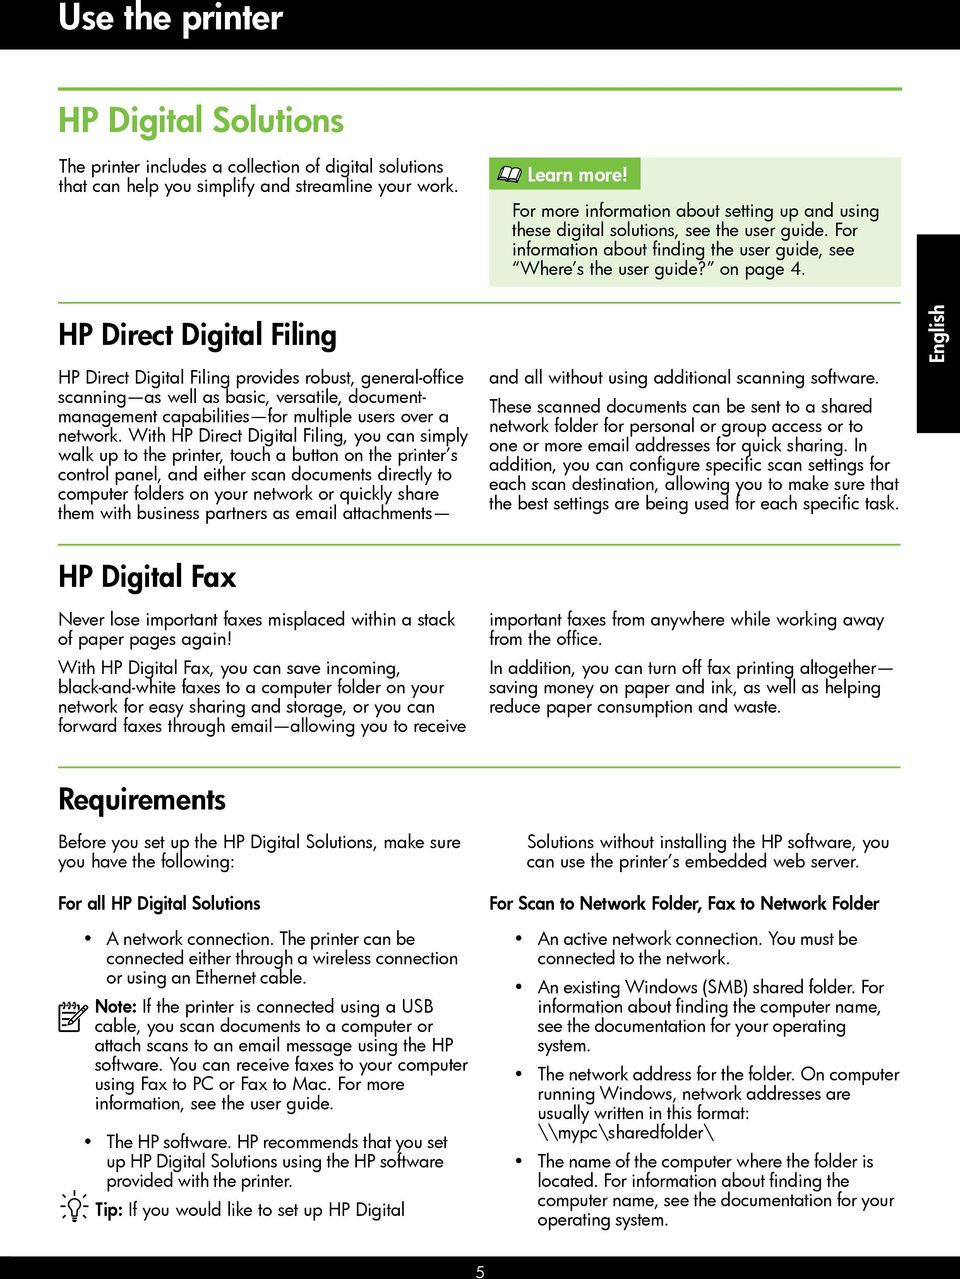 HP Direct Digital Filing HP Direct Digital Filing provides robust, general-office scanning as well as basic, versatile, documentmanagement capabilities for multiple users over a network.